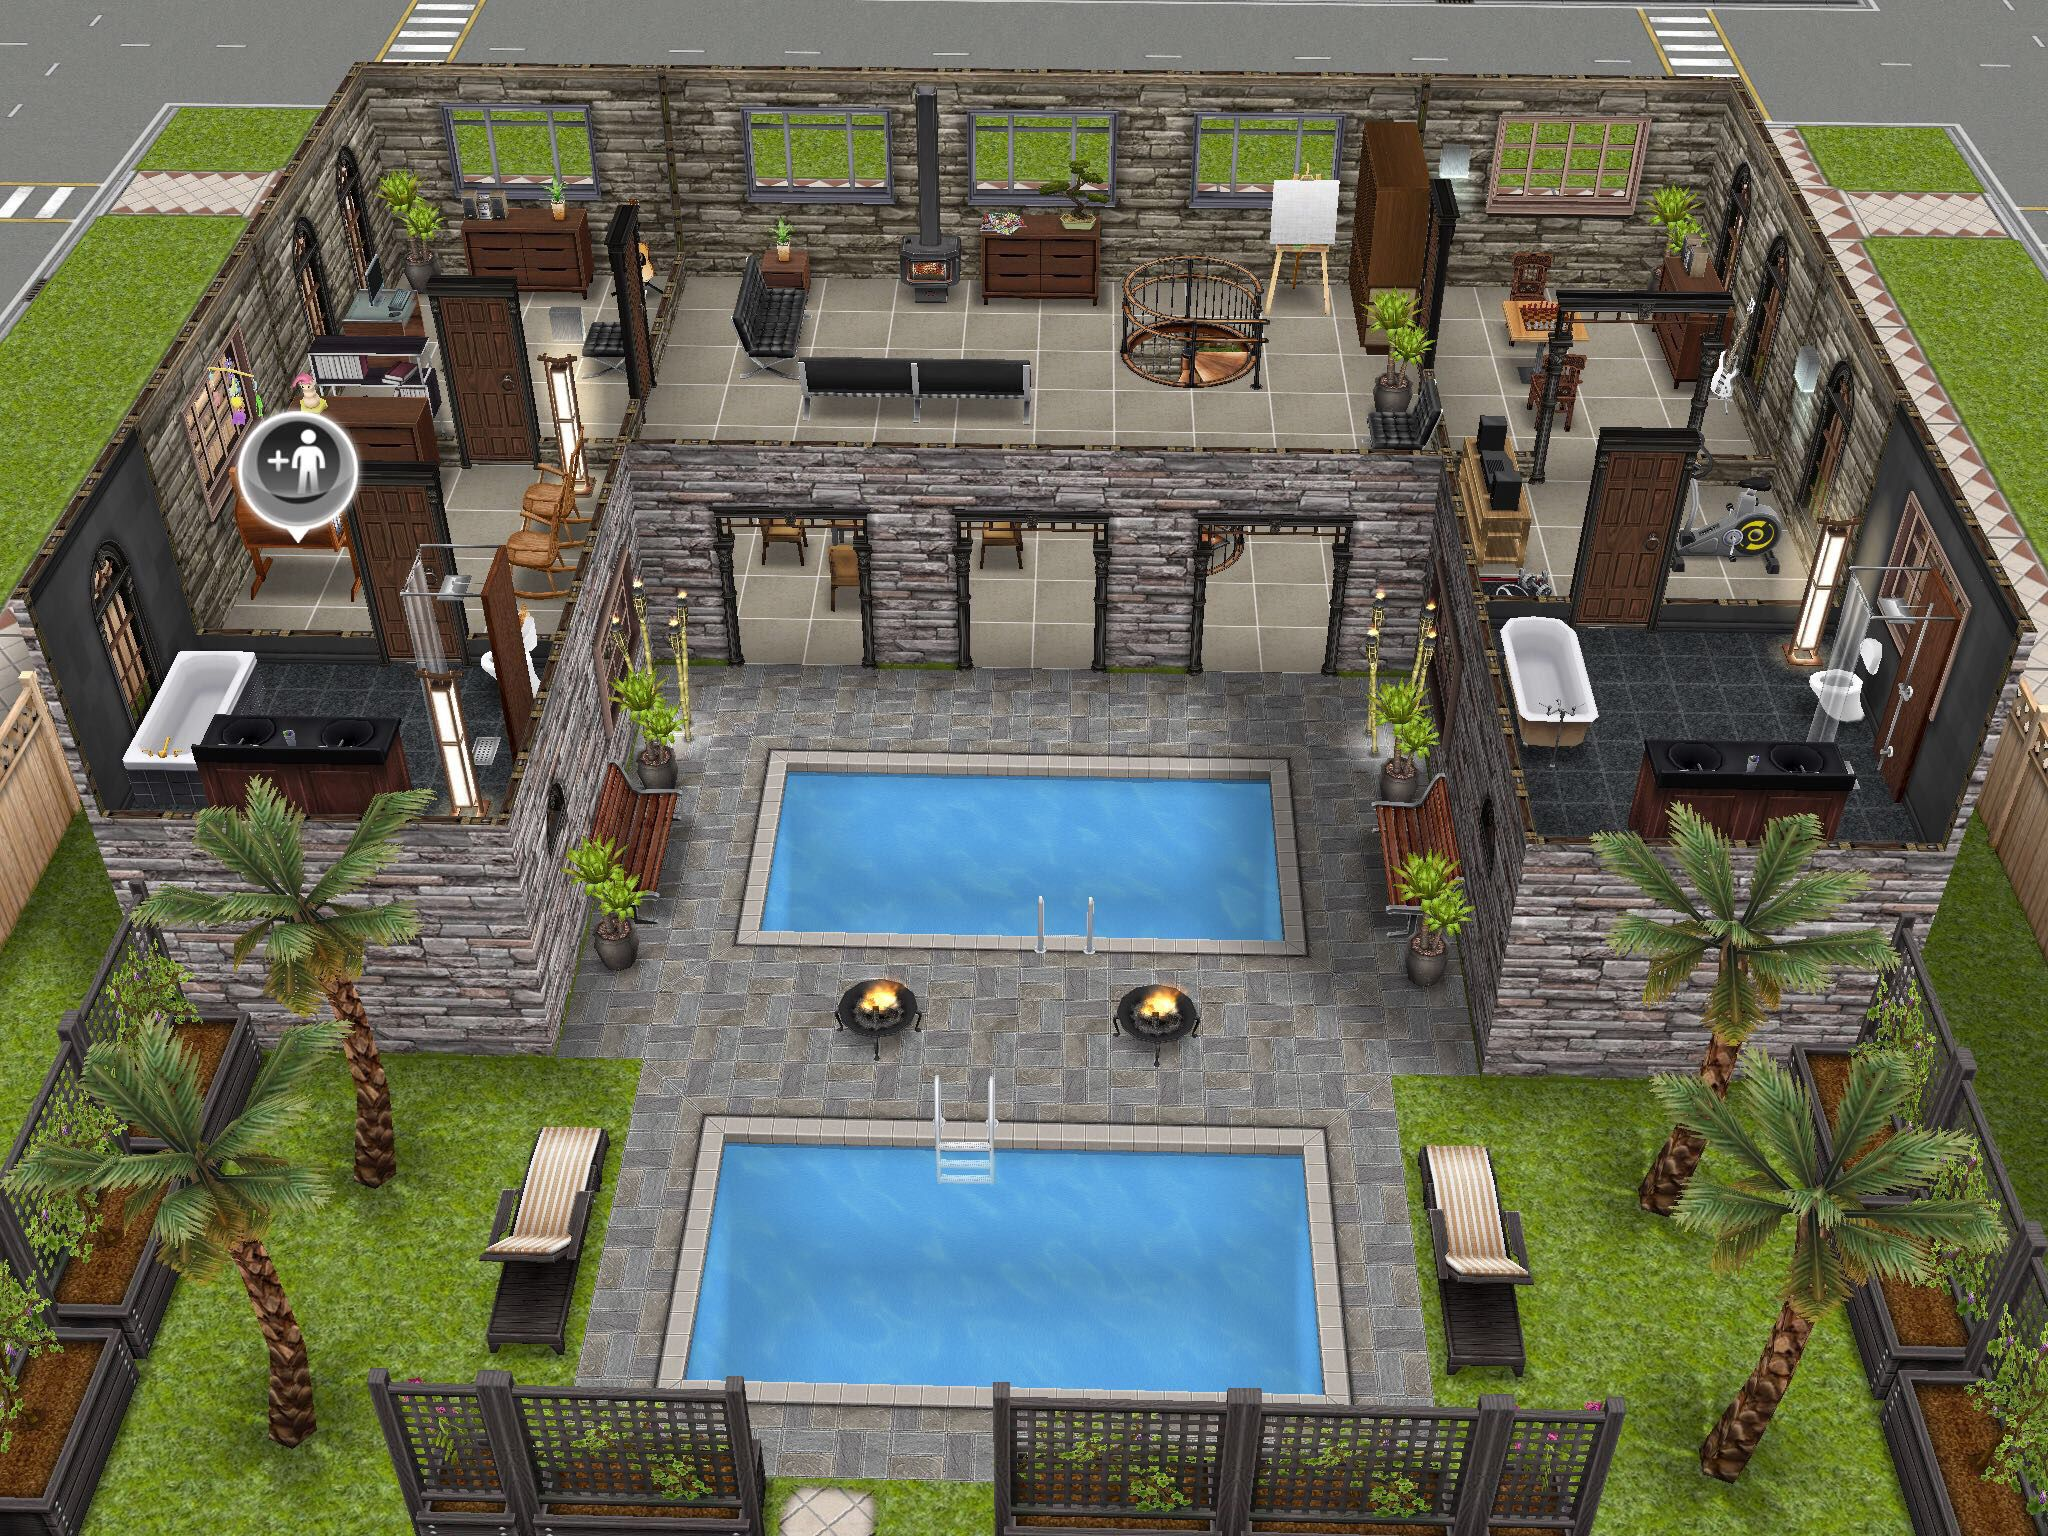 Variation of an awesome house I saw on Pinterest   Level 2   thesims   Sims  Freeplay. 17 Best images about sims freeplay house ideas on Pinterest   2nd